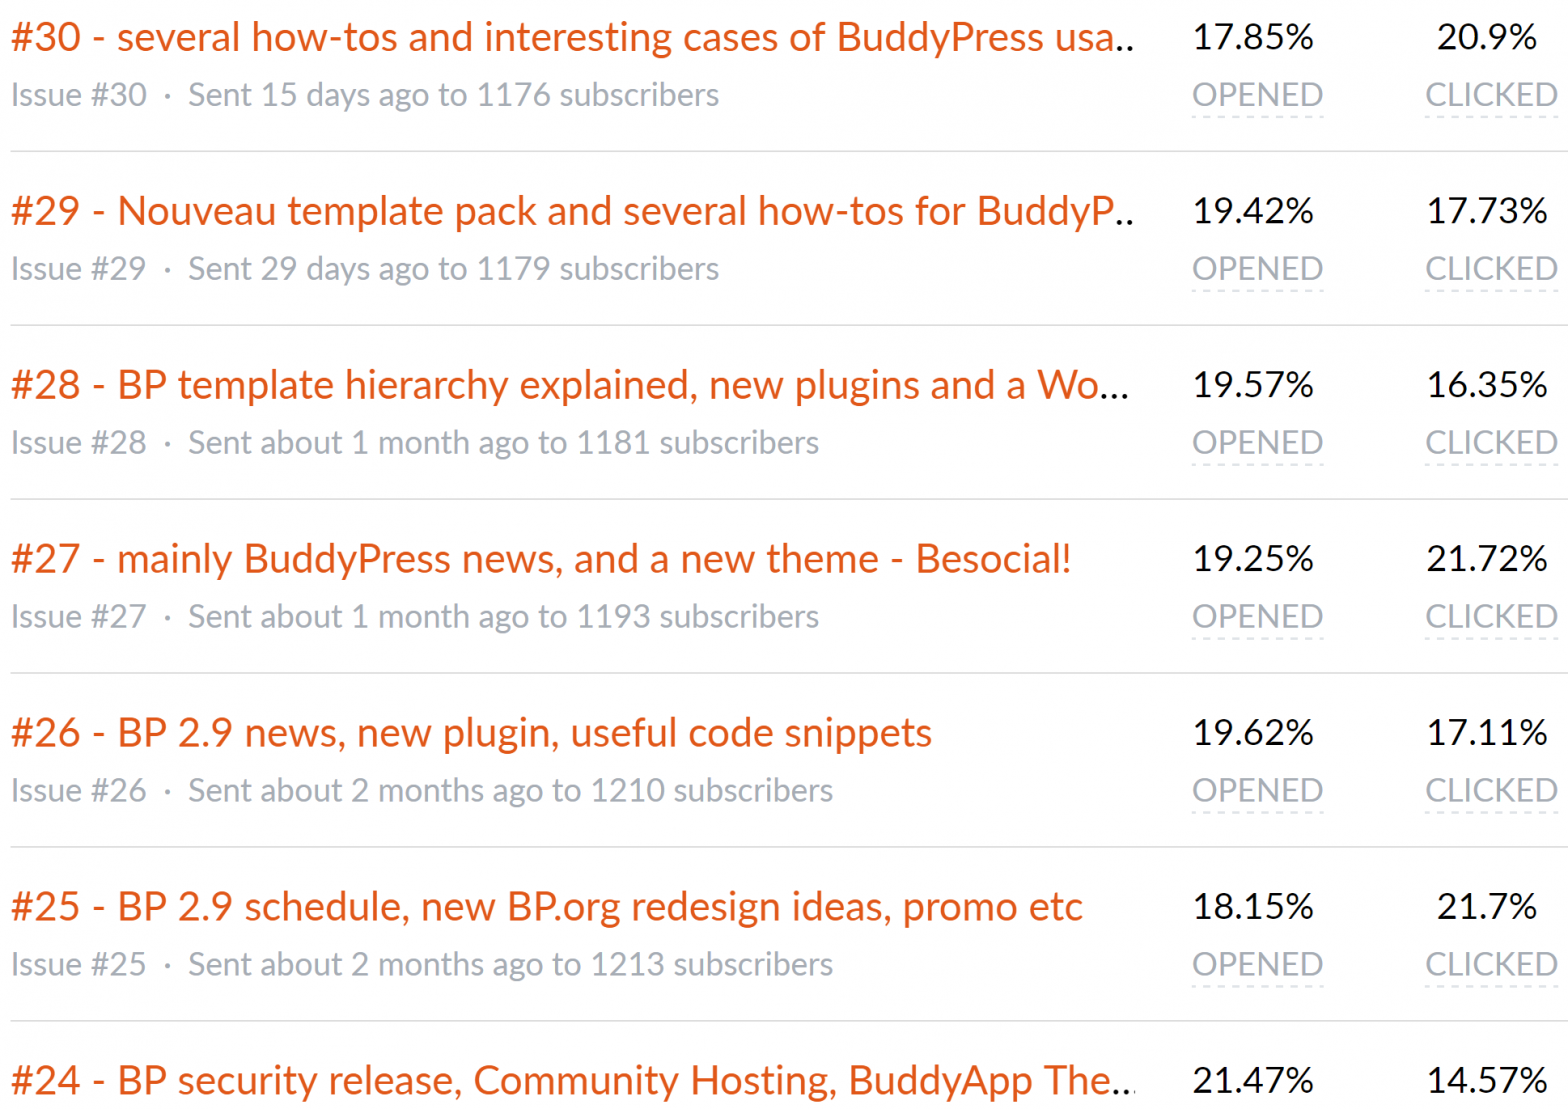 BPMail Latest Statistics - up to #30 newsletter